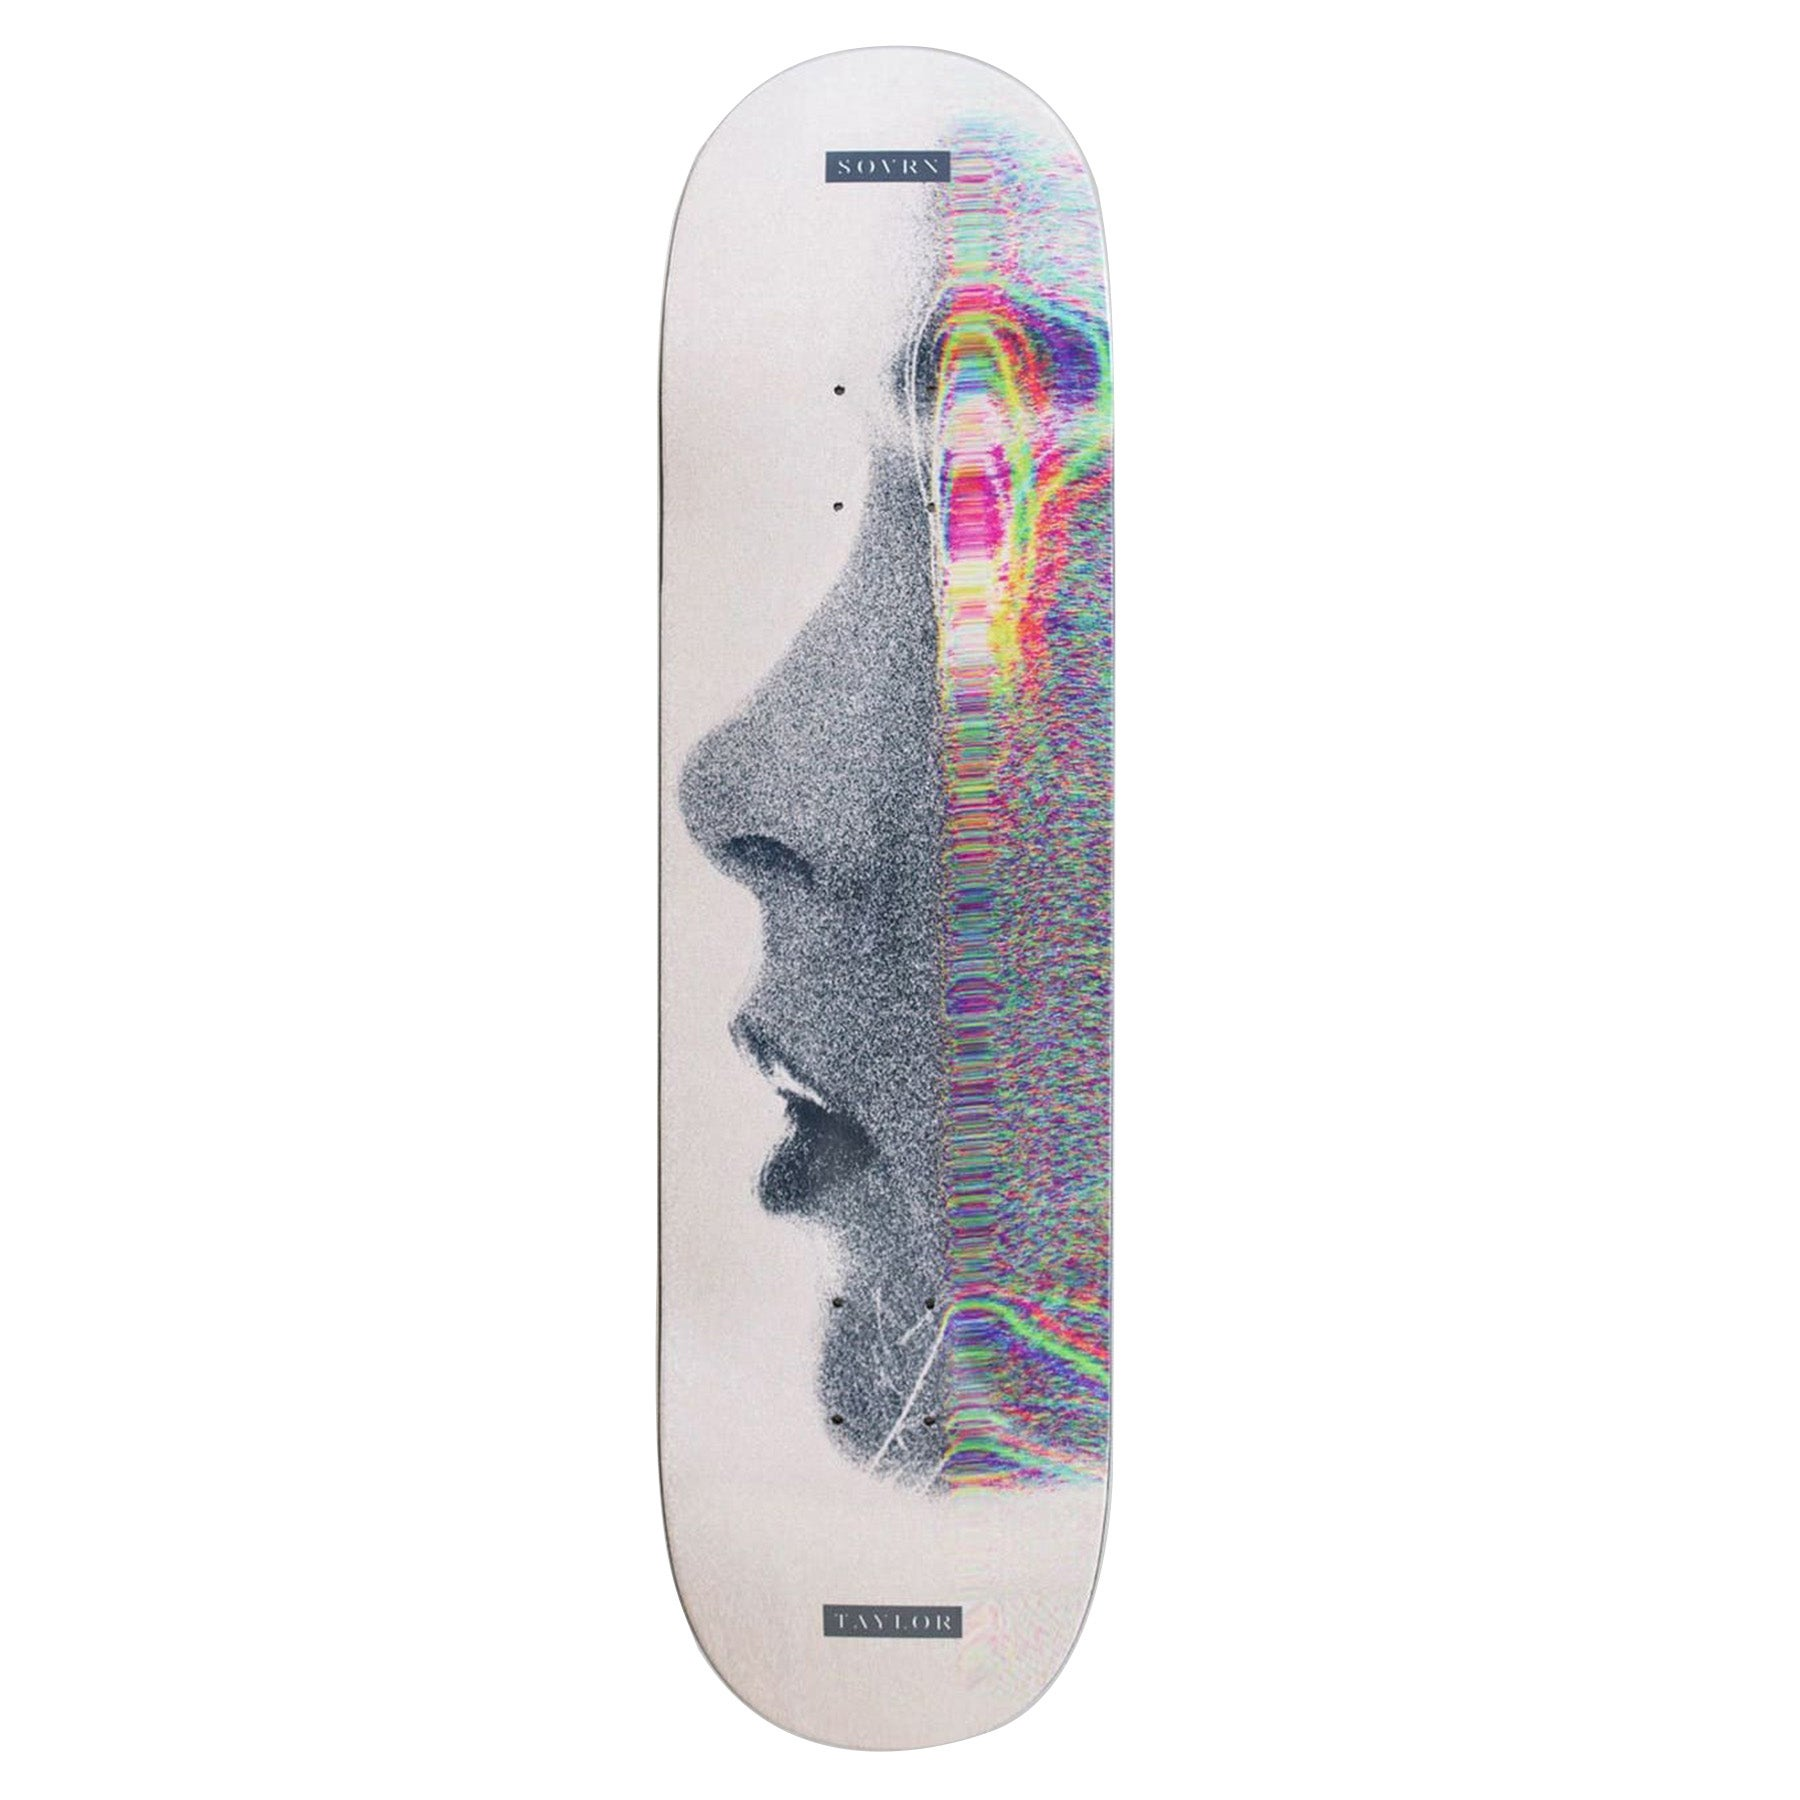 Patinete SOVRN In Limbo Mikey Taylor 8.25 Inch - Multicolour